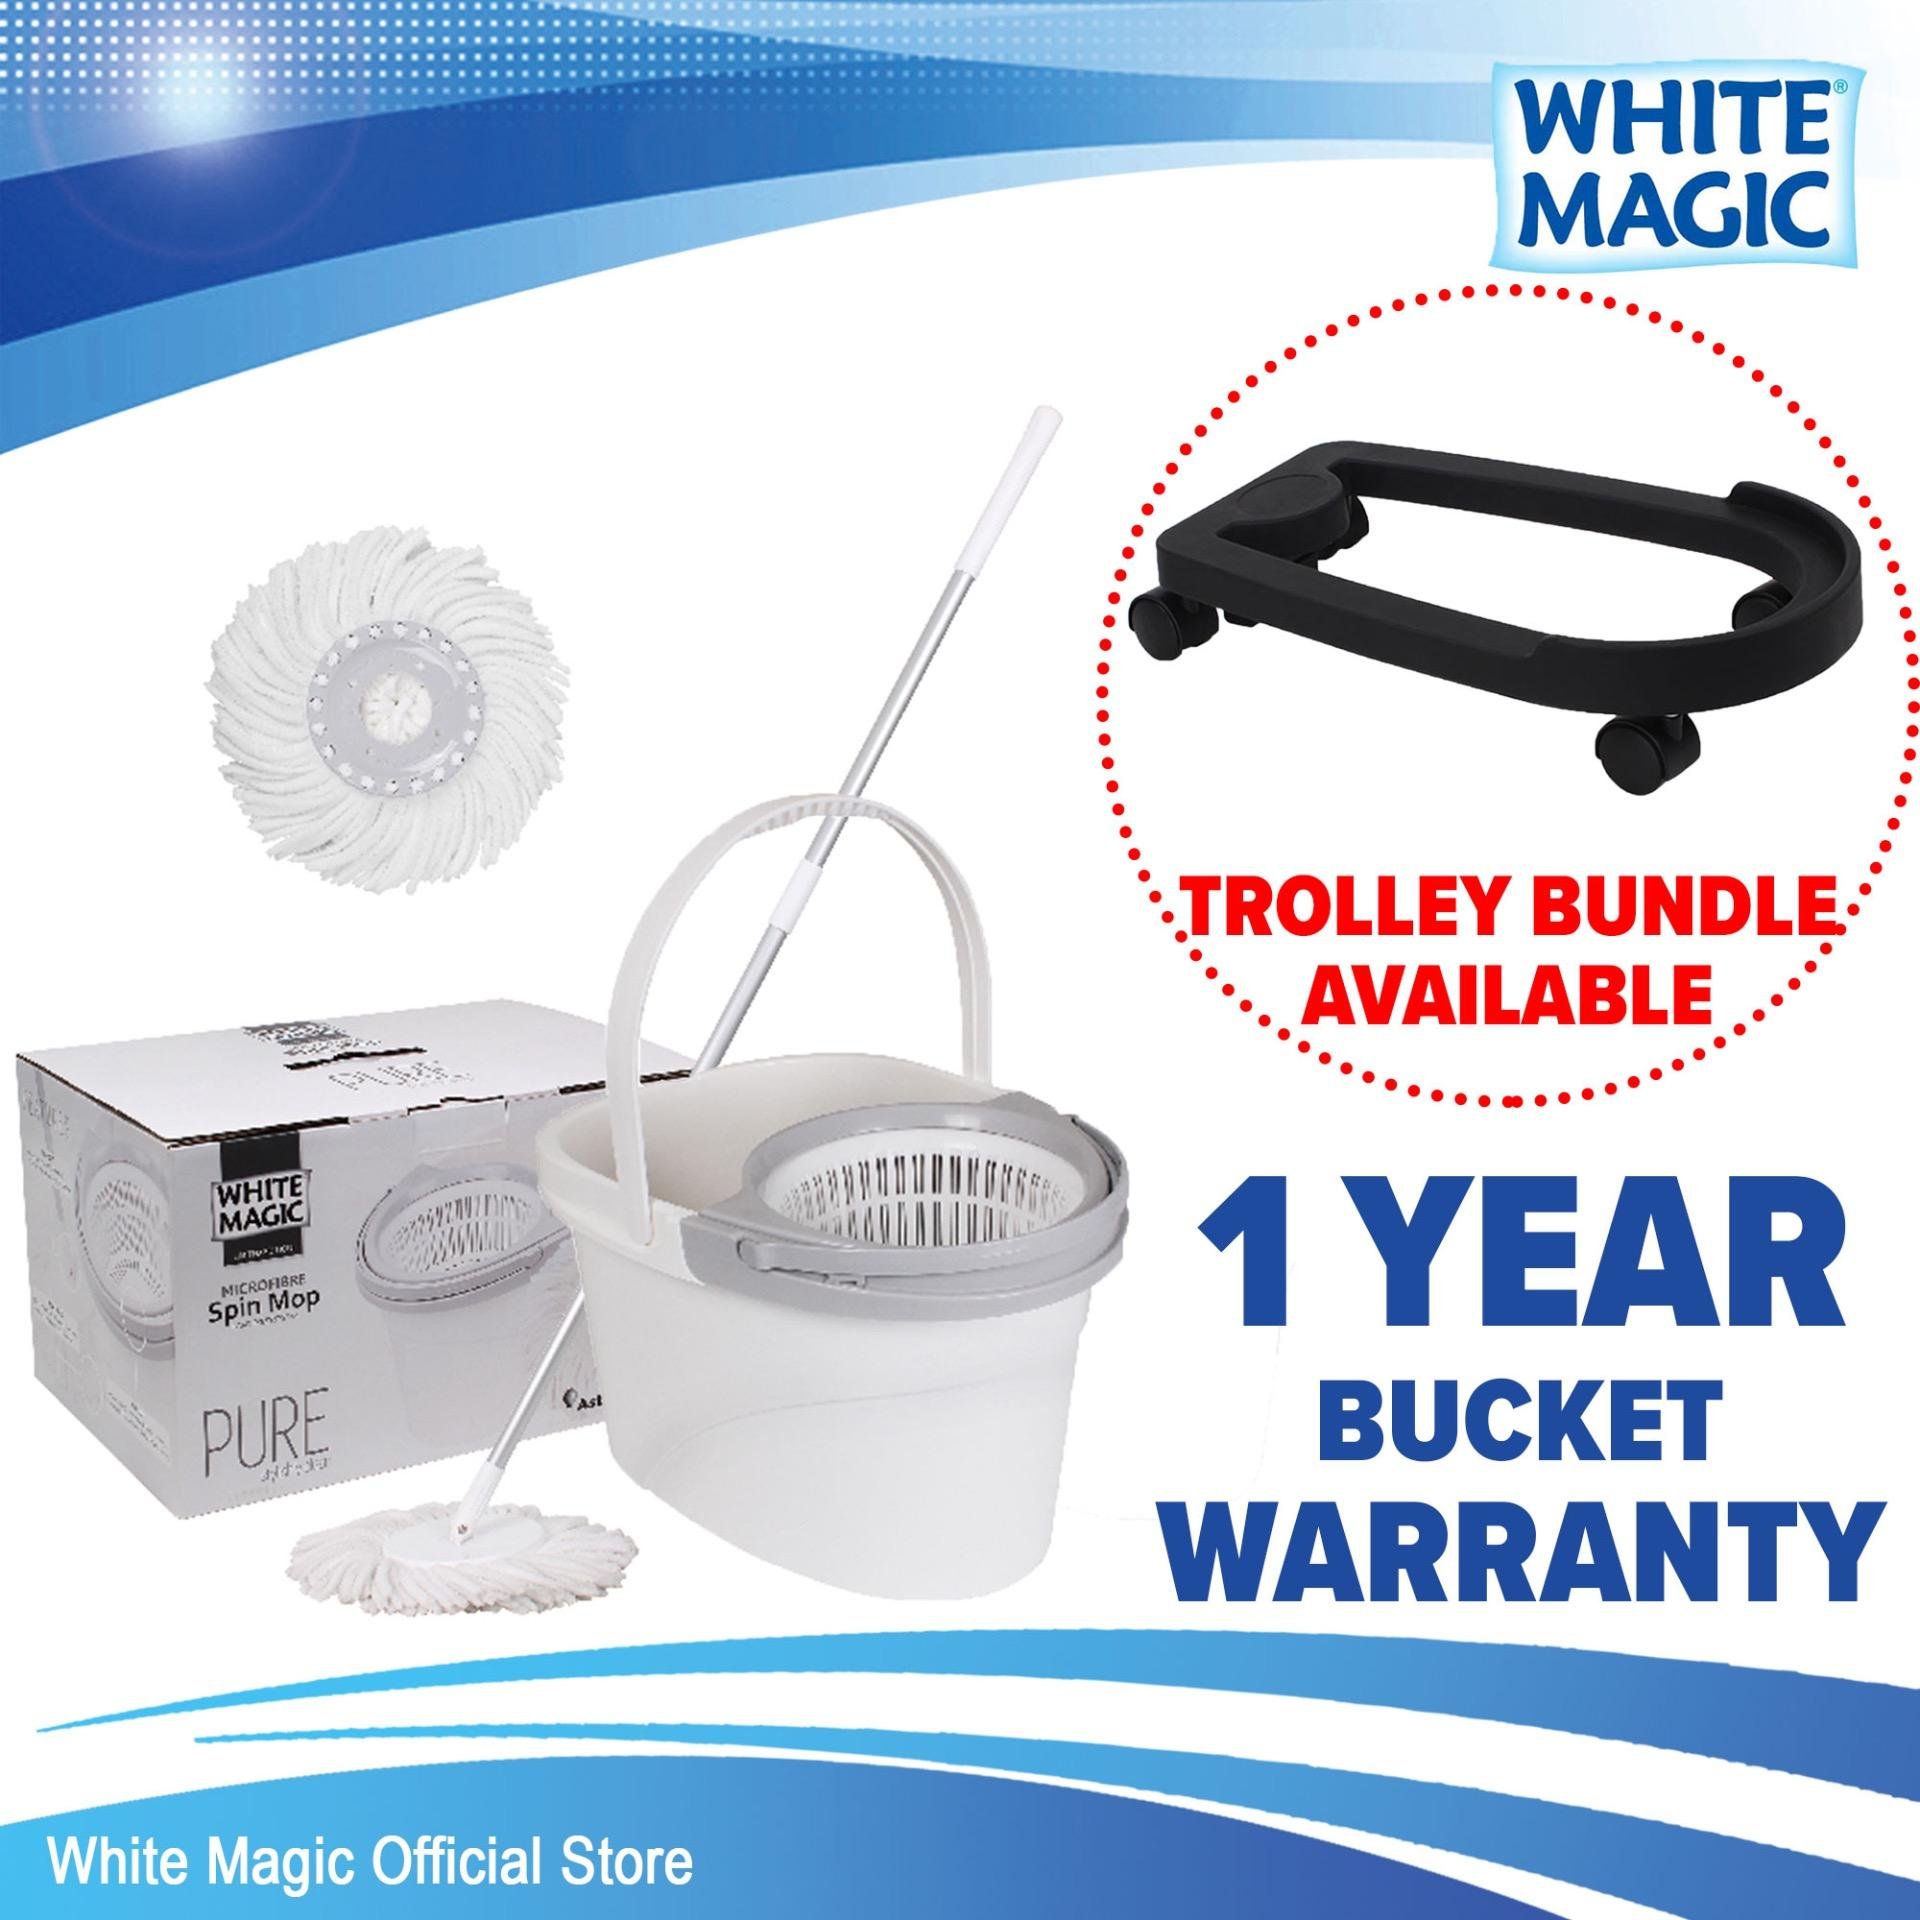 White Magic Pure Spin Mop Set (with 2 Free Mop Heads) / Trolley Bundle (add-On Available) / 1 Year Bucket Warranty By White Magic Official Store.